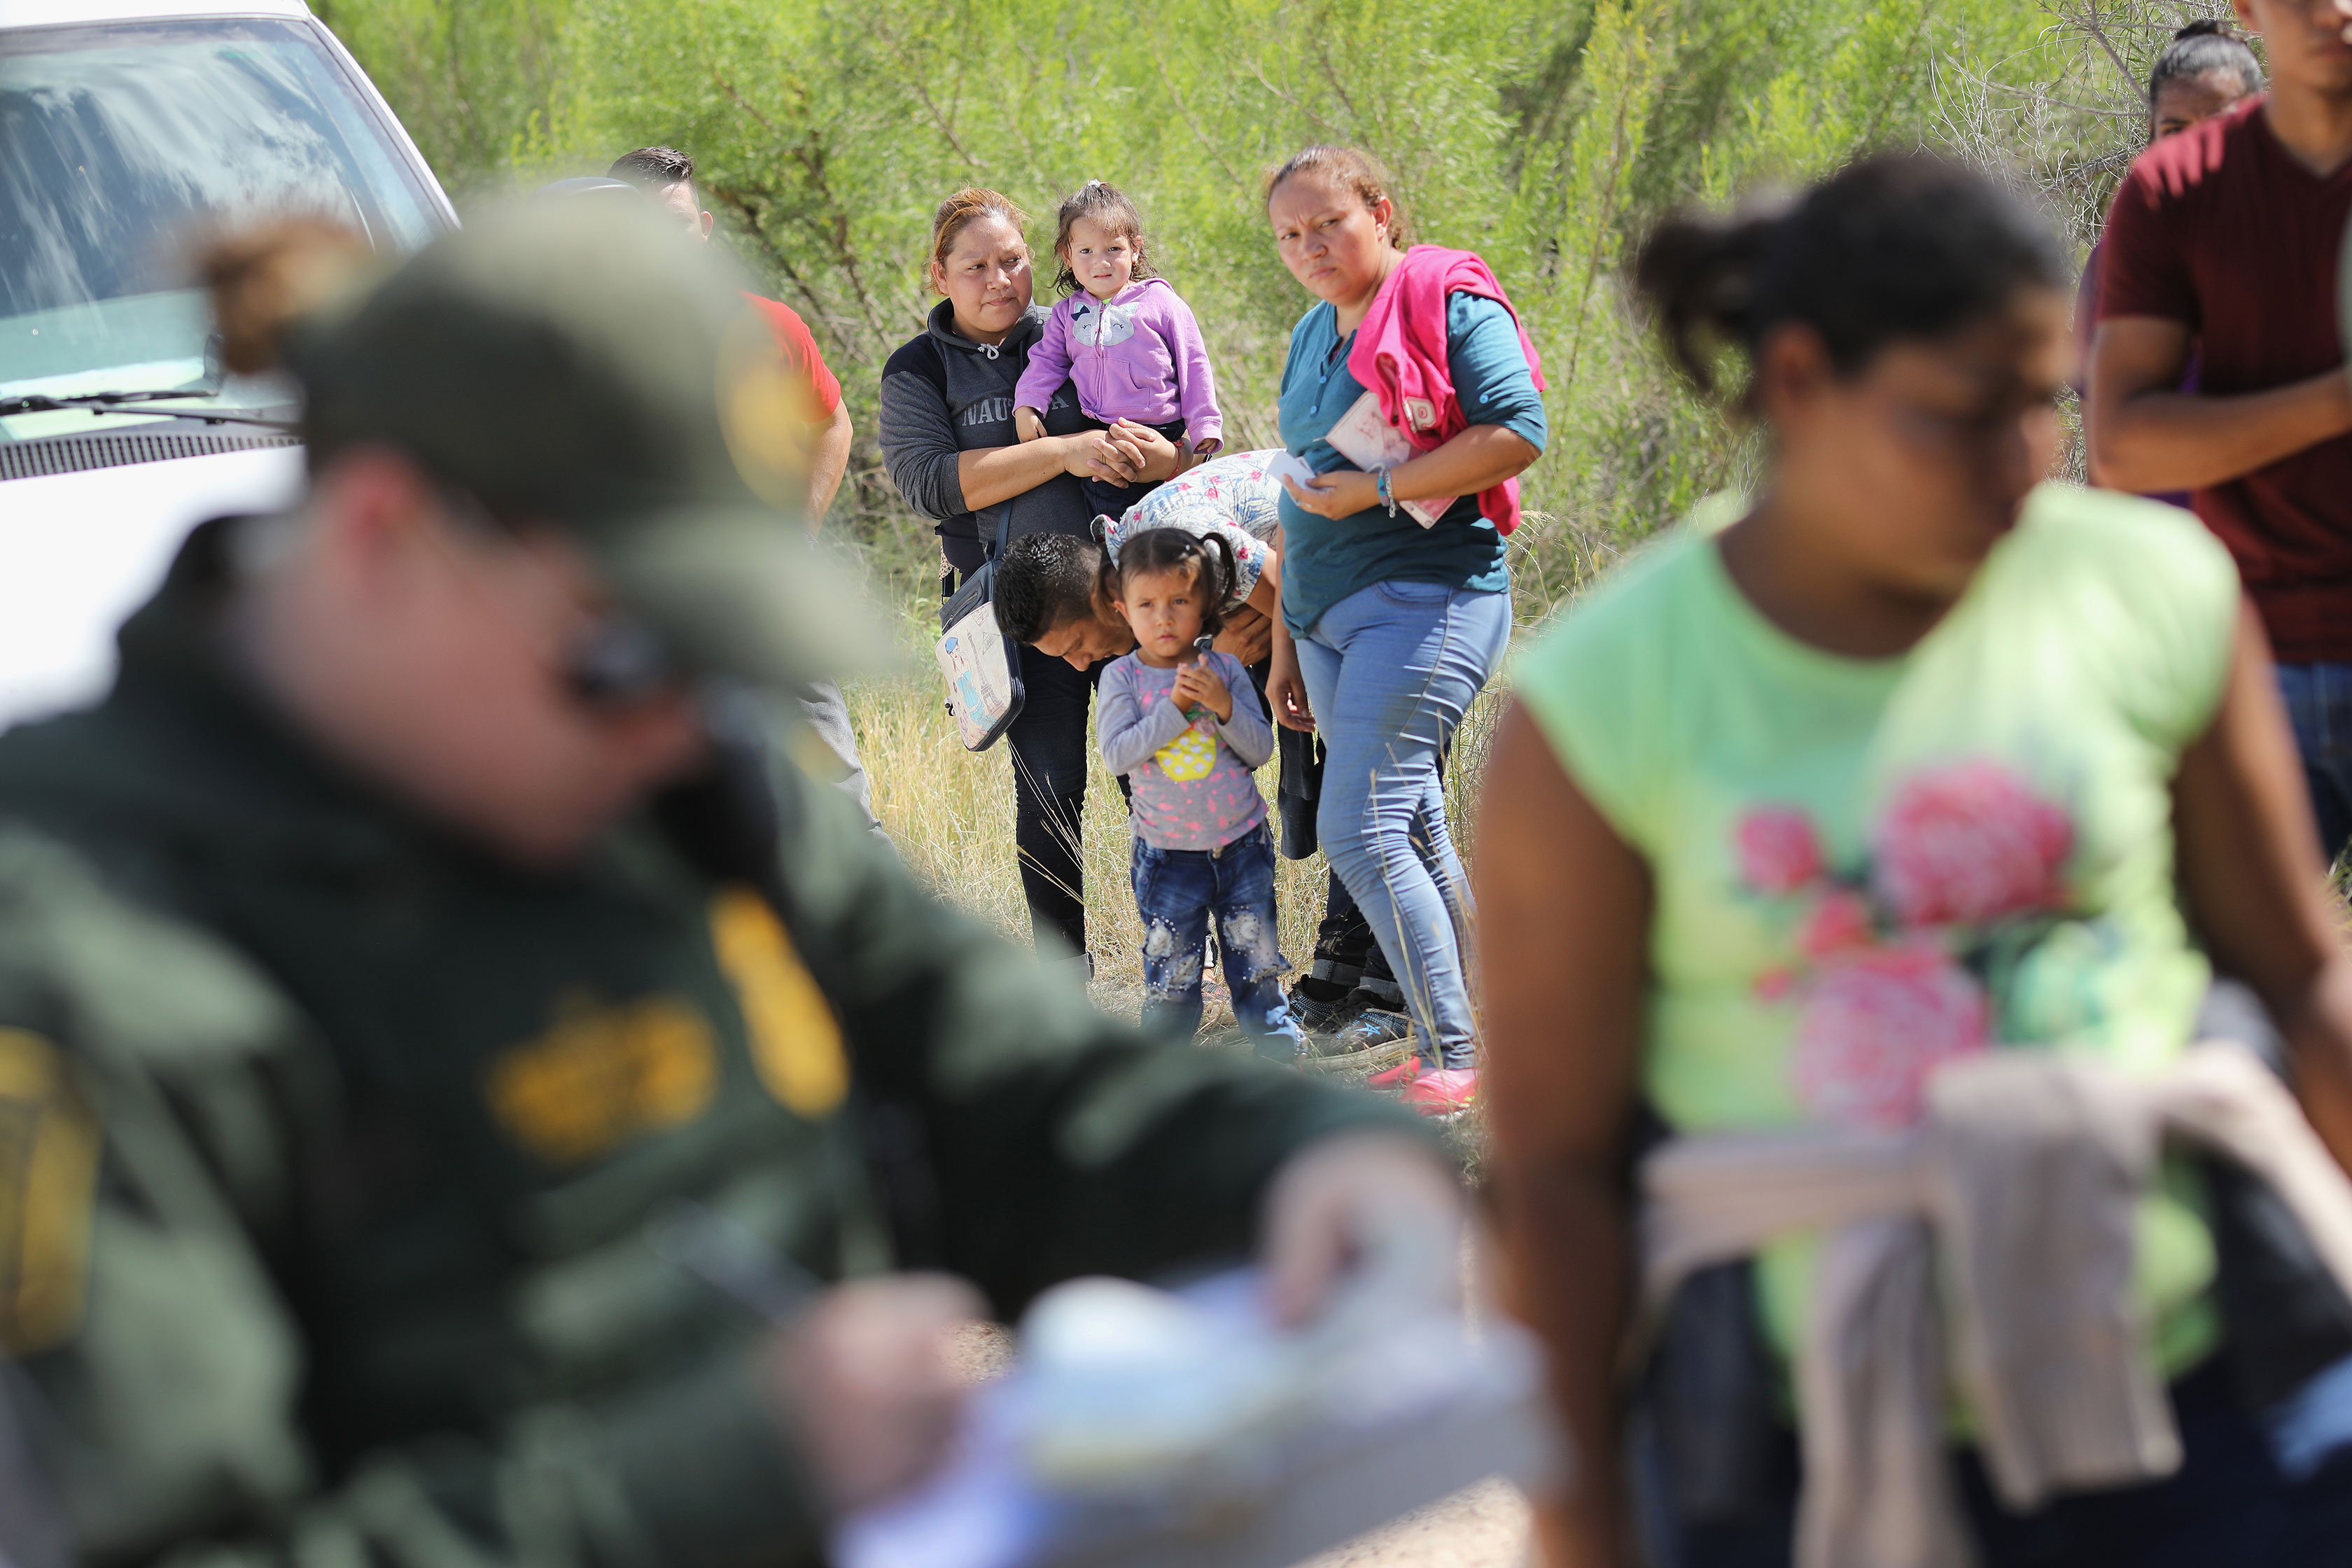 DOJ asks judge to remove 20-day limit on detaining immigrant families